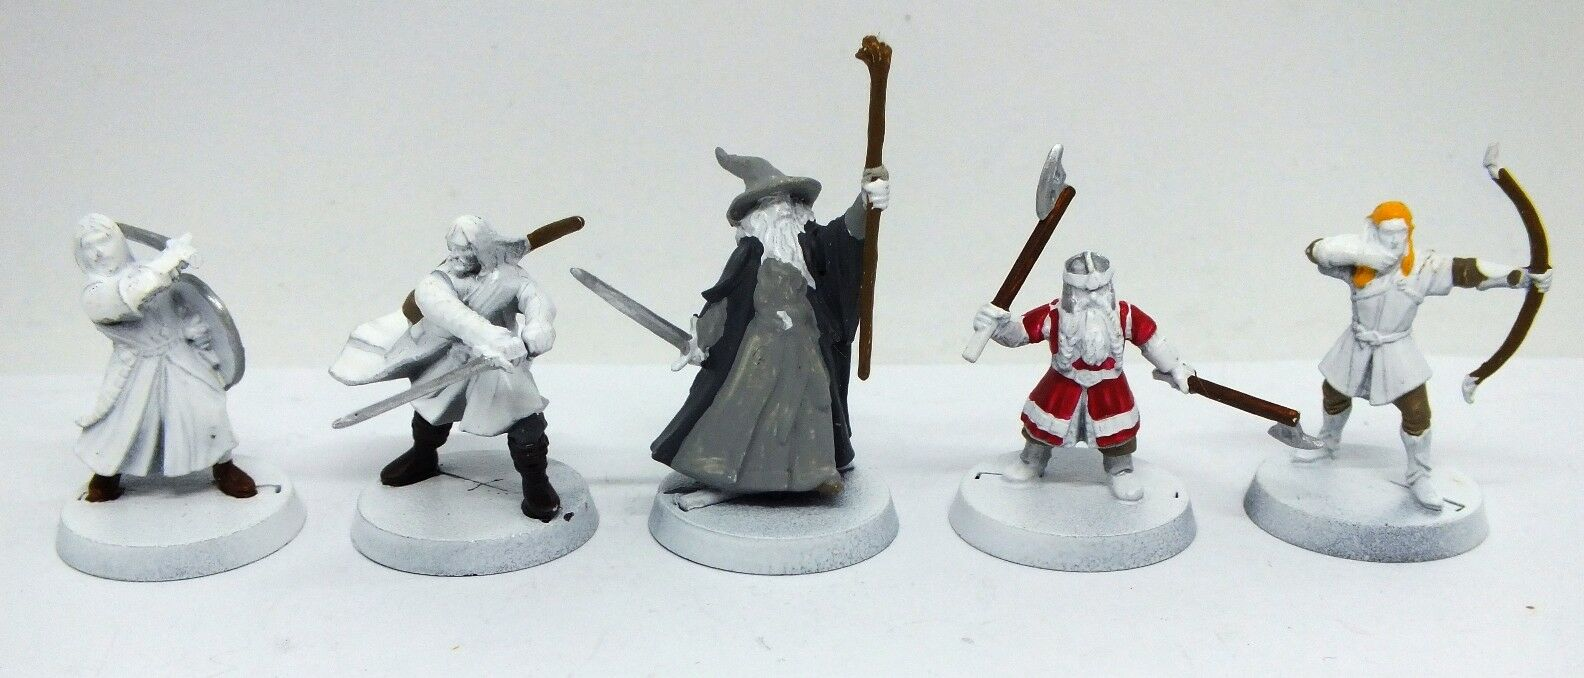 The Lord of the Anneaux - The Fellowship of the Ring (INCOMPLÈTES) - 28mm